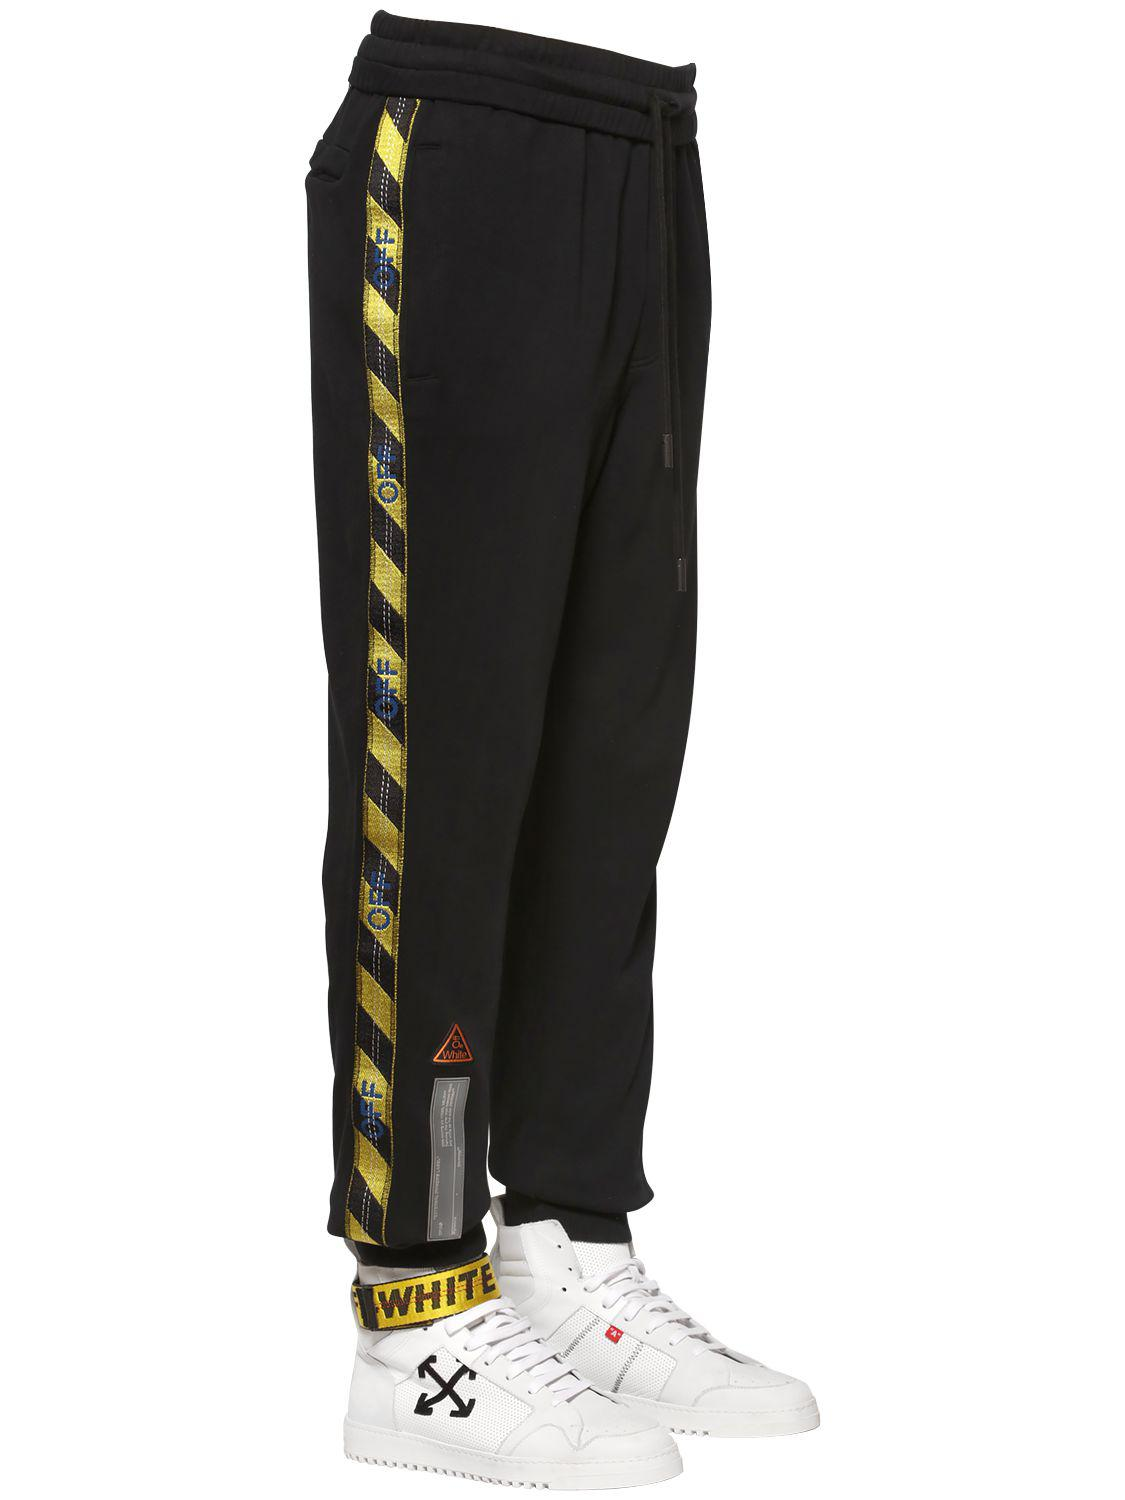 513de46e Off-White c/o Virgil Abloh Fire Line Tape Cotton Sweatpants in Black ...